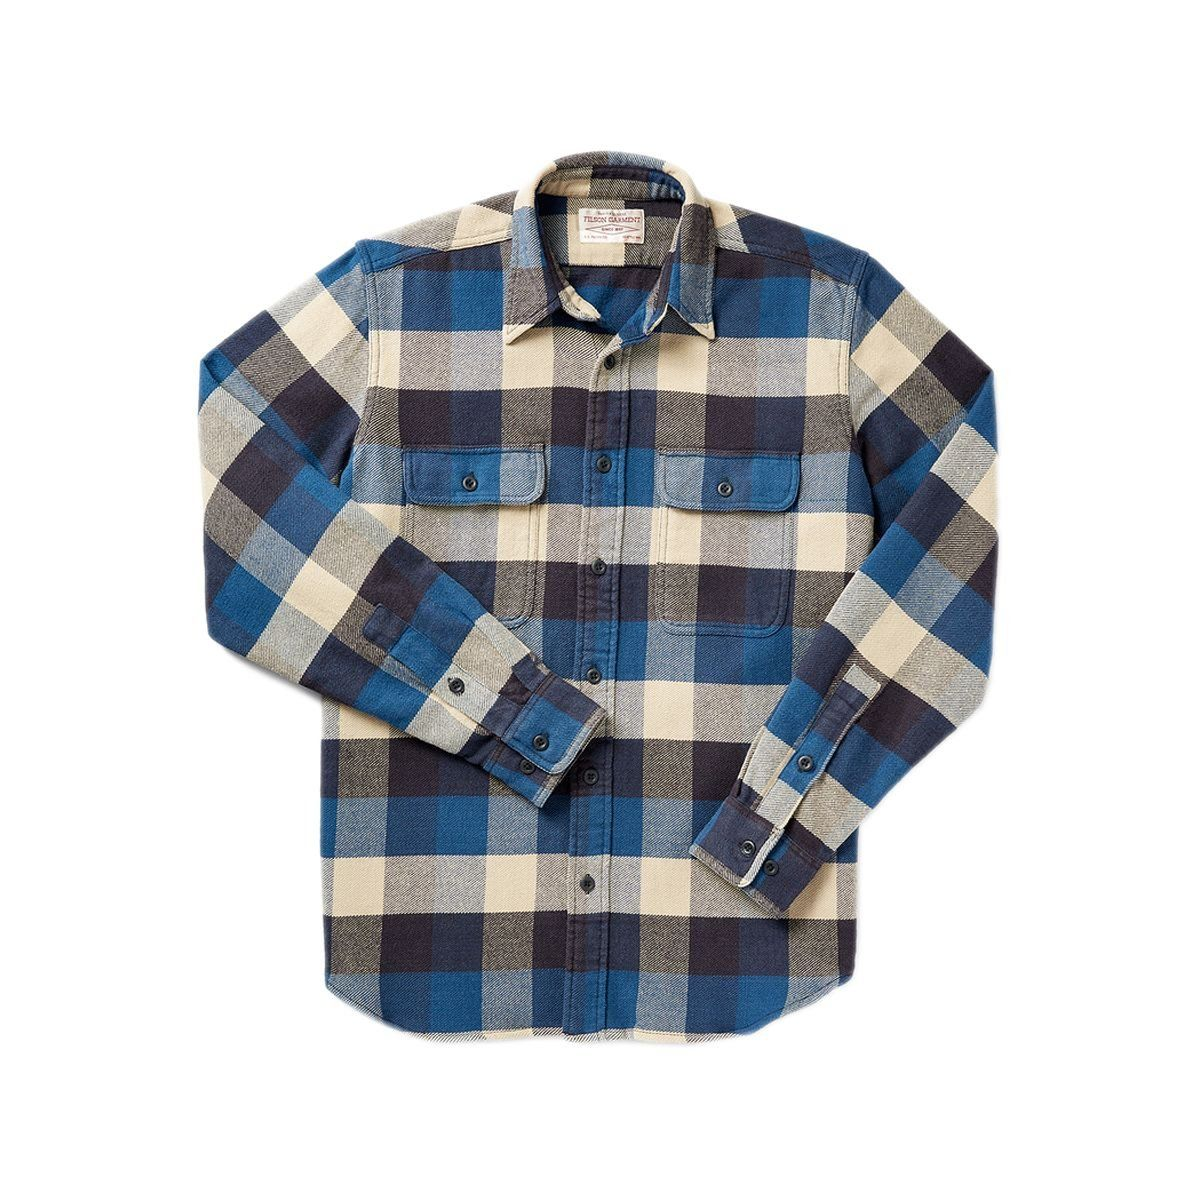 Flannel outfit ideas men  Filson Menus Vintage Flannel Work Shirt Xlarge Blue Buffalo at